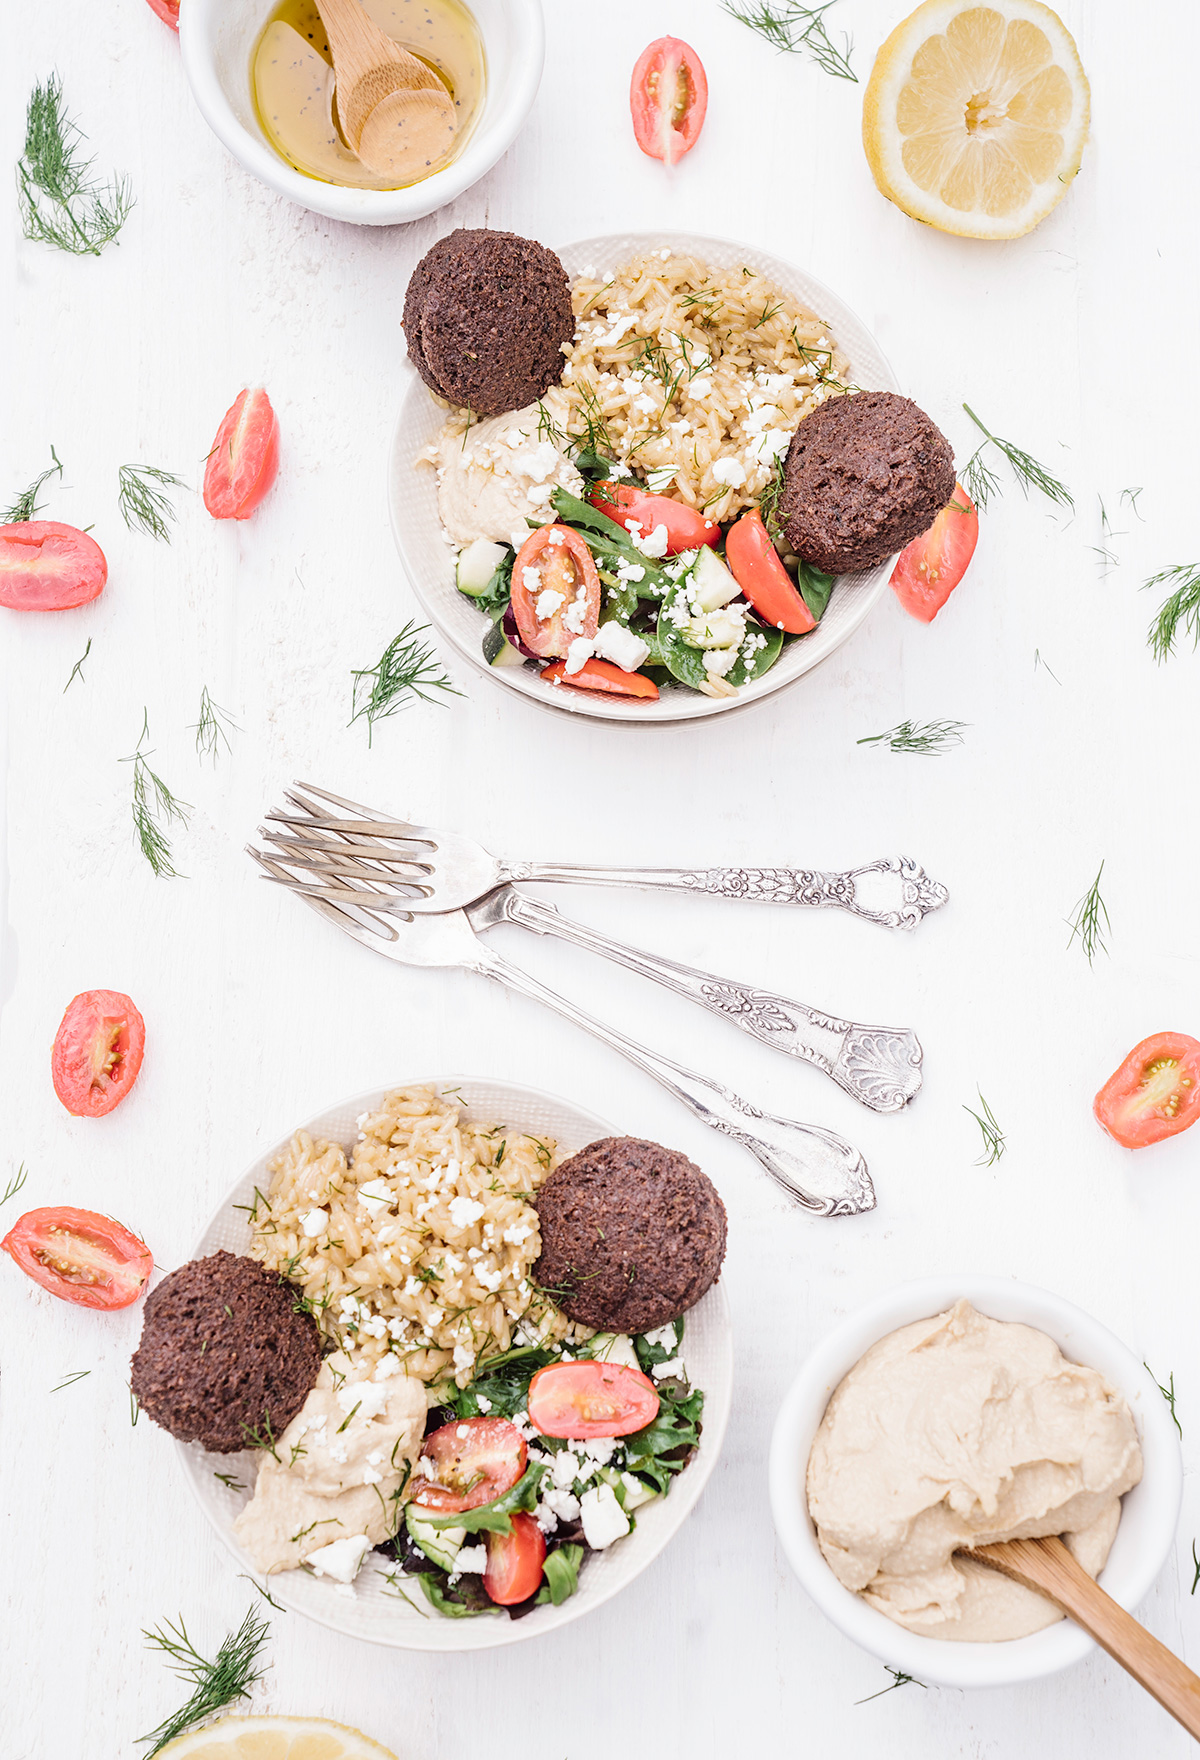 Falafel-Rice-Bowls-with-Salad-and-Feta